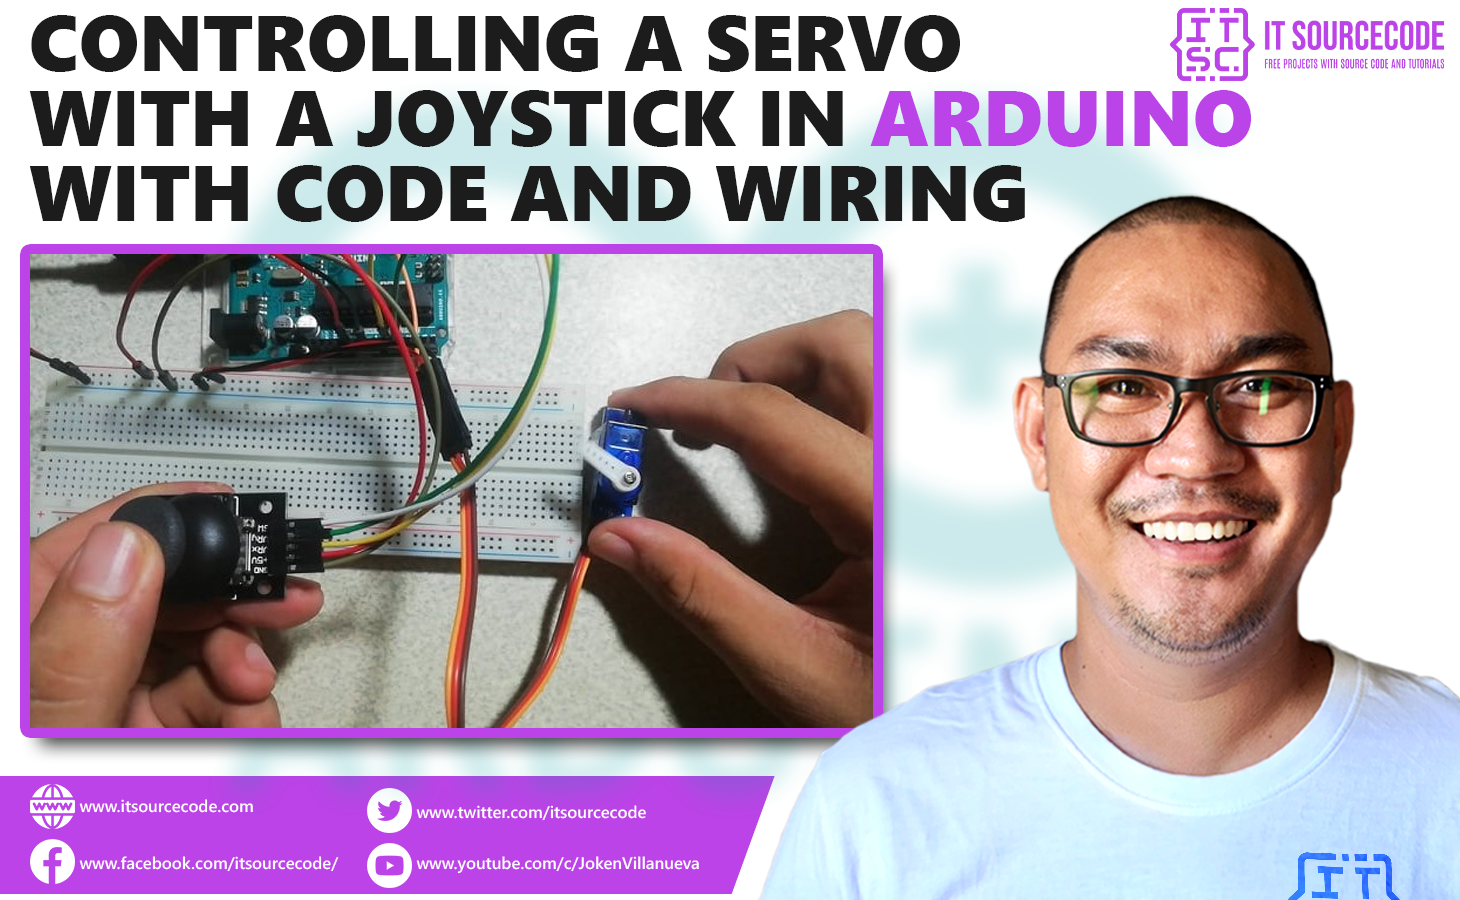 Controlling a Servo with Joystick in Arduino - Code and Wiring Diagram